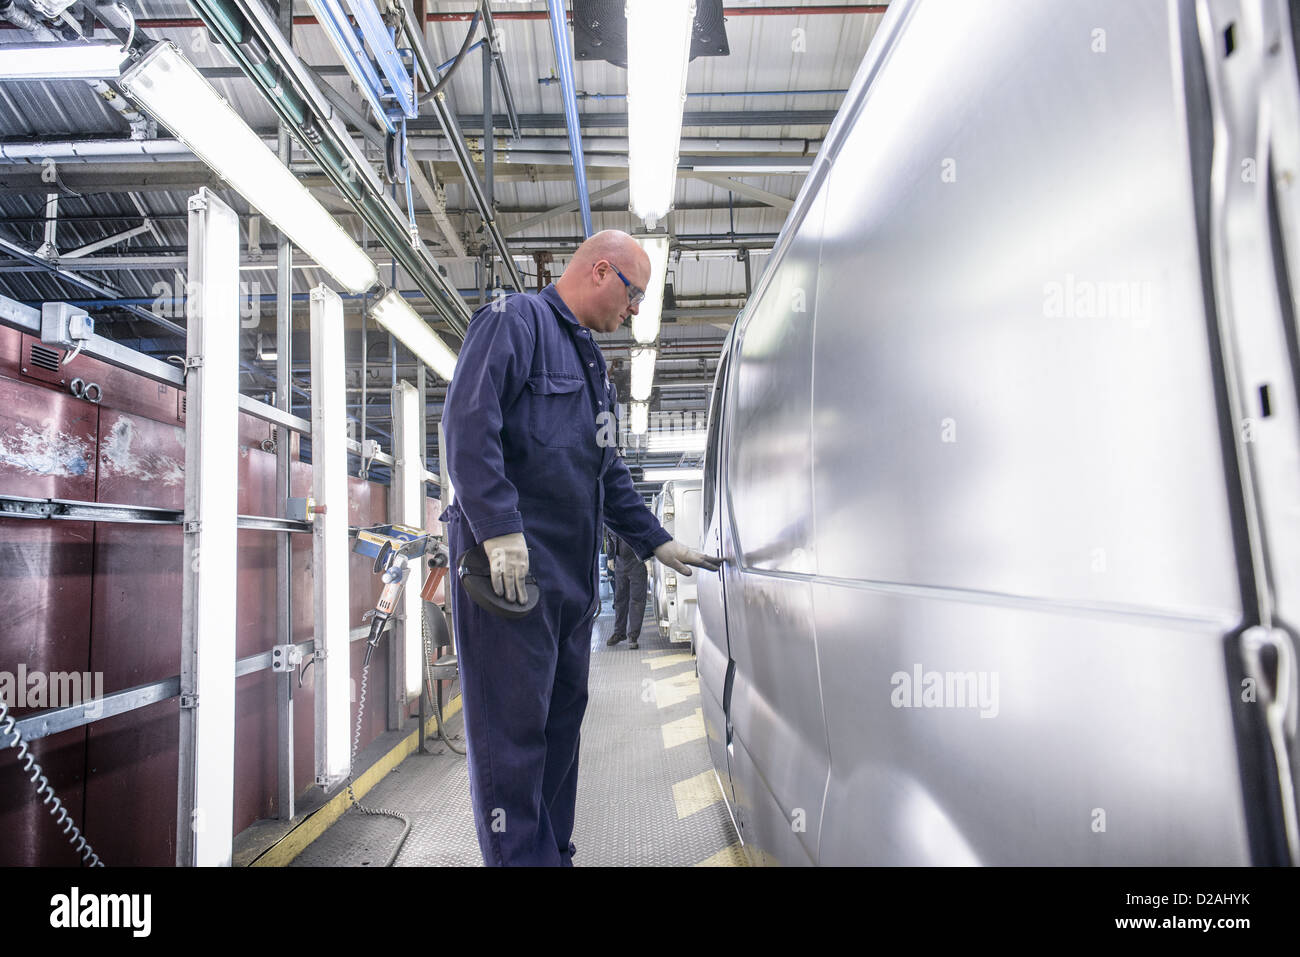 Worker inspecting vehicle in car factory - Stock Image